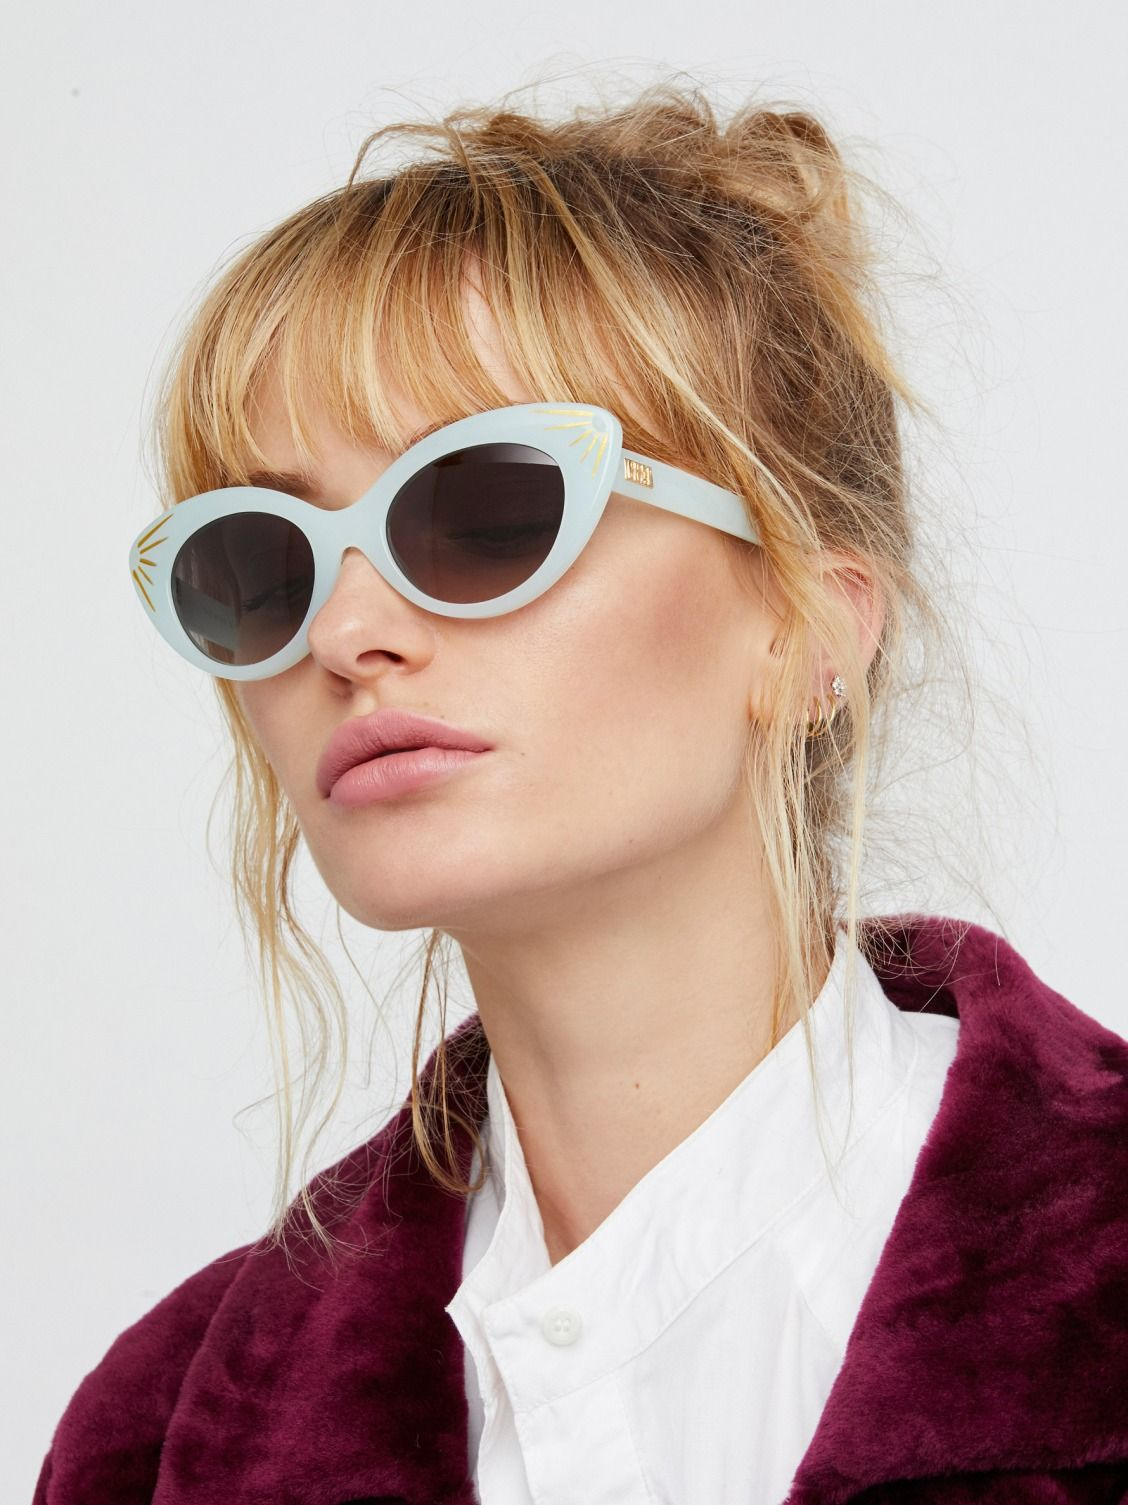 46de8e5fab4 CRAP Eyewear Gloss Powder Blue   Sunray The Wild Gift Sunglasses at Free  People Clothing Boutique